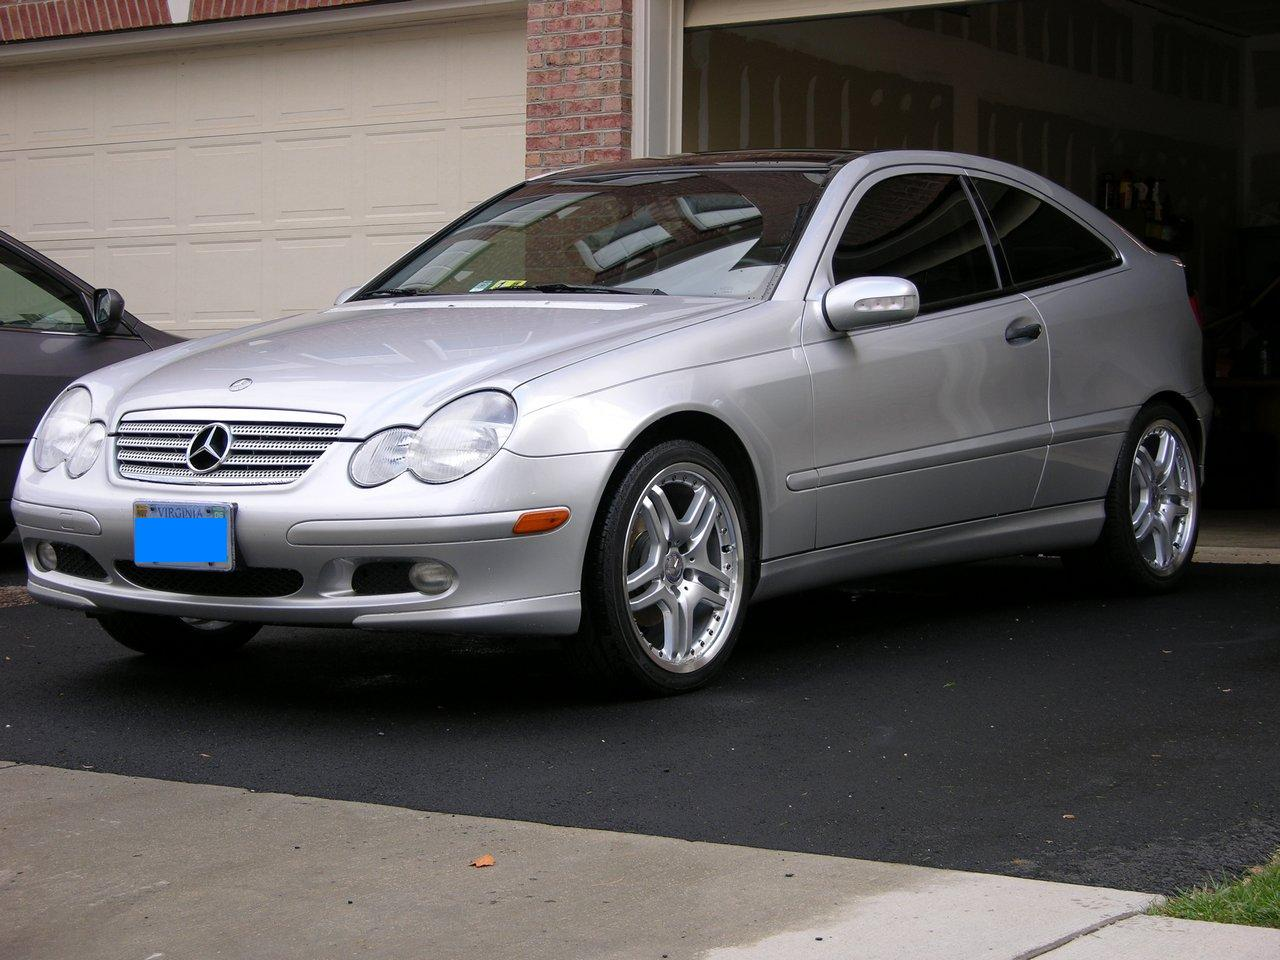 Mercedes Benz Coupe >> For Sale: 2003 C230 Coupe - Mercedes-Benz Forum